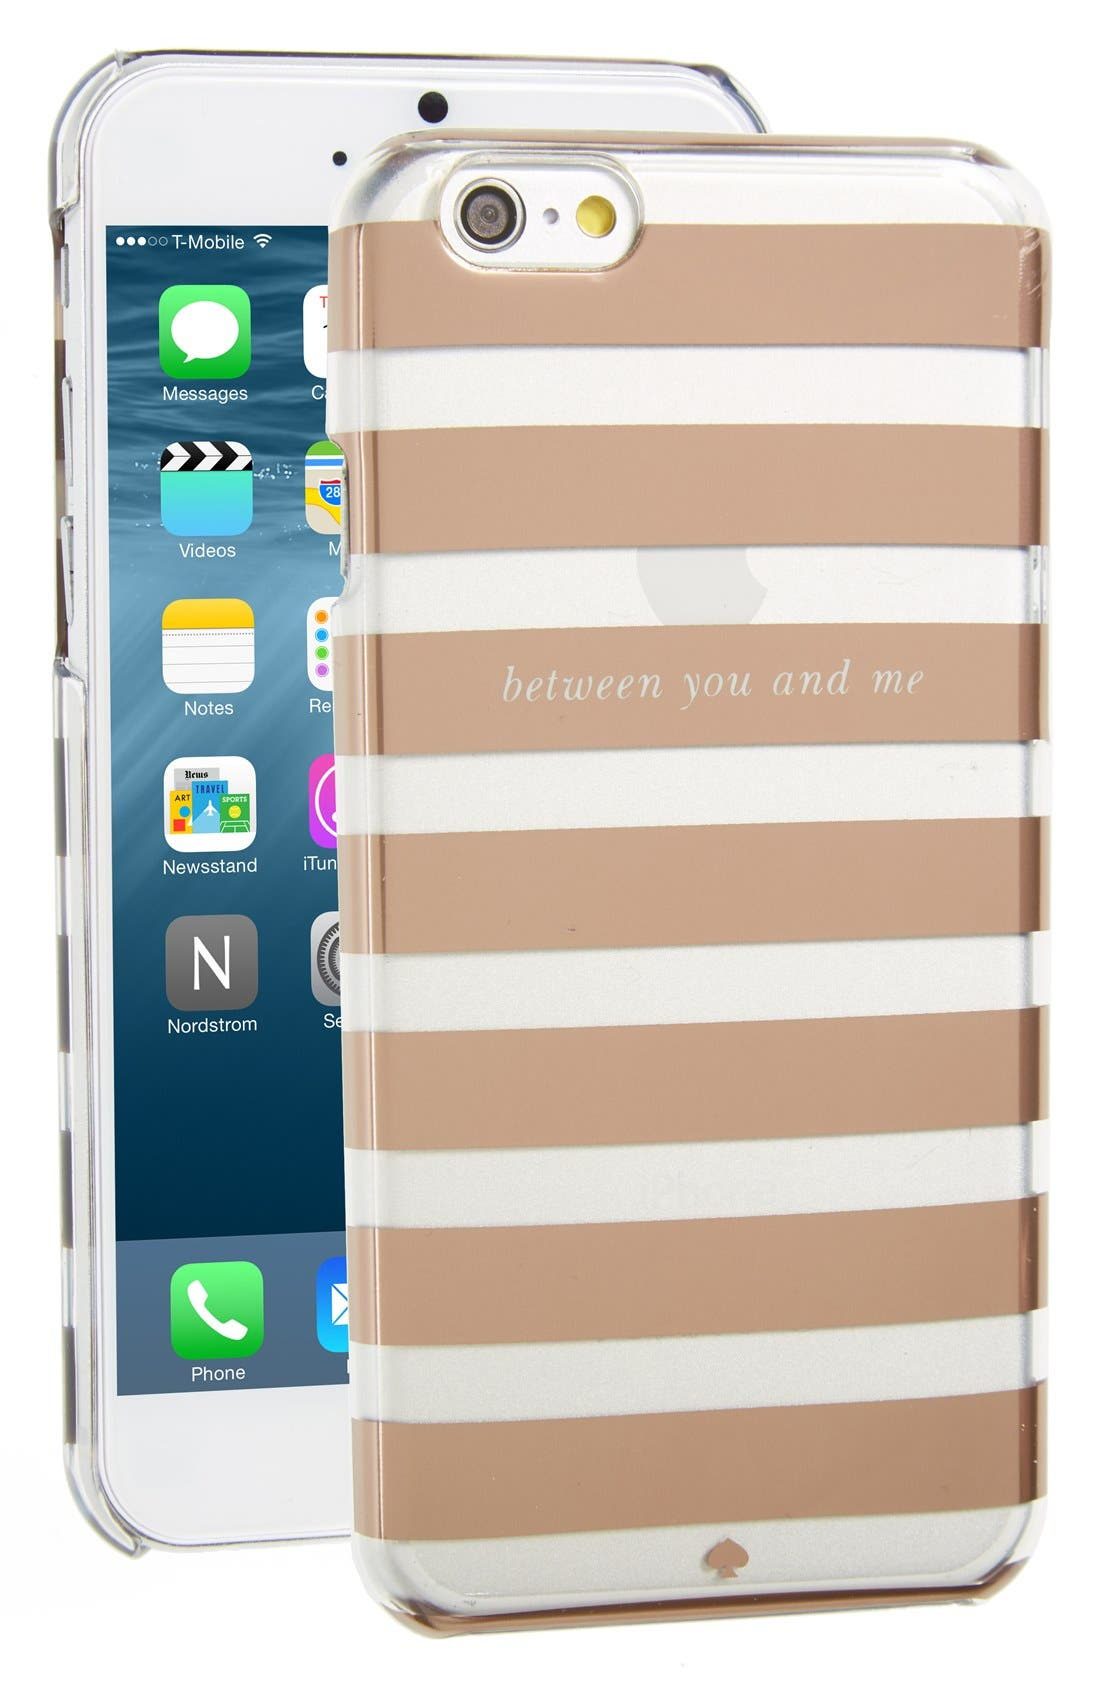 Main Image - kate spade new york 'between you and me' iPhone6 case